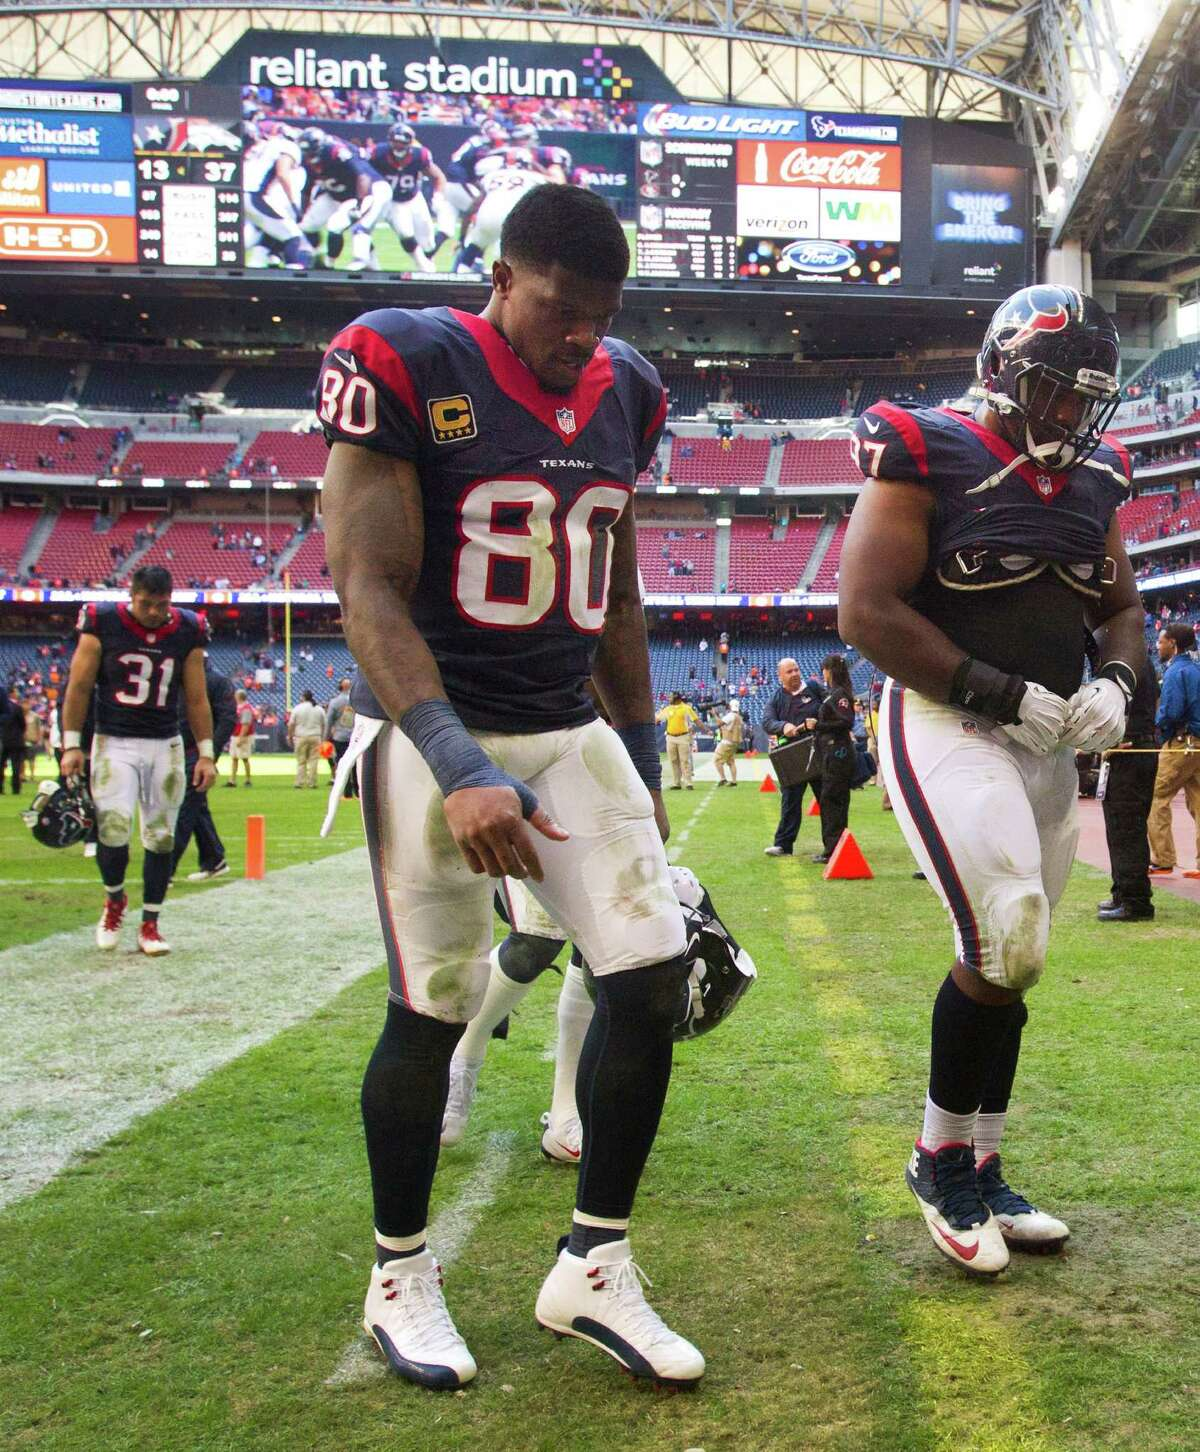 Texans wide receiver Andre Johnson would lose $588,235 a week if he chooses to sit out this coming season.